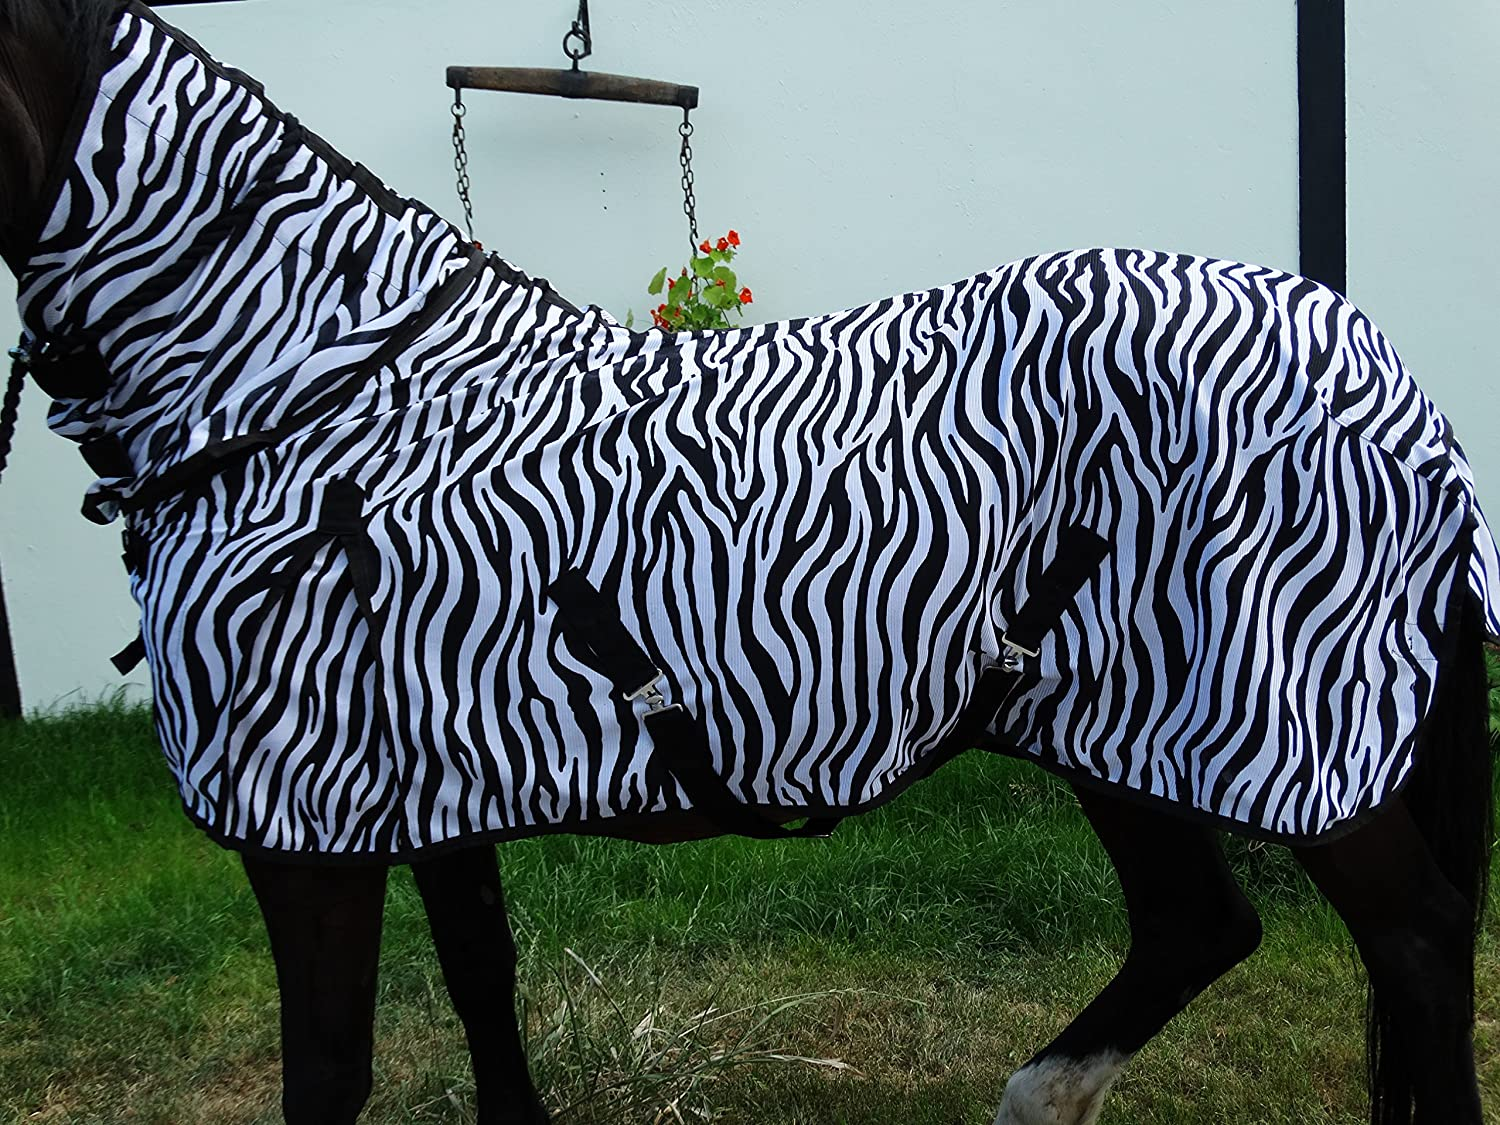 115 cm Wild Thing Zebra Fly Rug Combo With Neck Piece